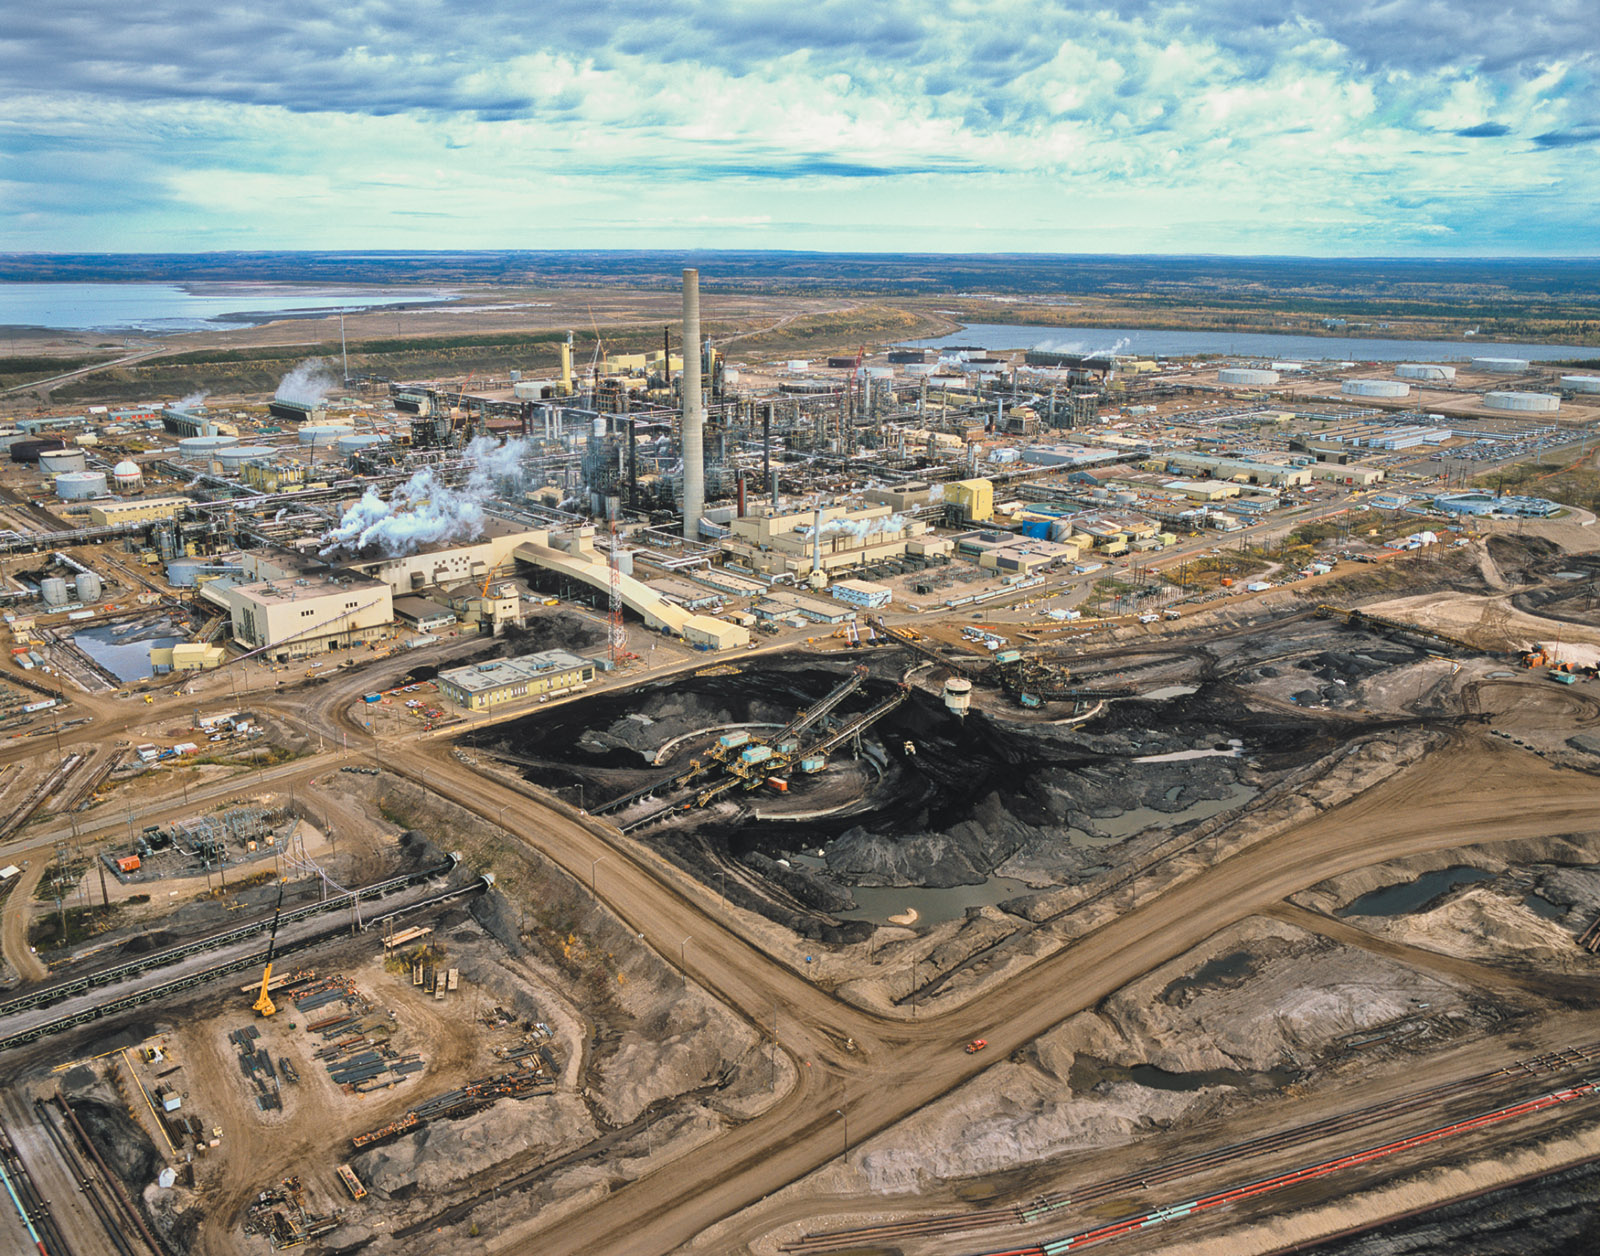 A plant owned by Syncrude, a joint venture of ExxonMobil's Canadian subsidiary Imperial Oil, which processes oil from the tar sands of northern Alberta, Canada's biggest source of carbon emissions and the US's largest source of imported oil; photograph by Garth Lenz from his traveling exhibition 'The True Cost of Oil'